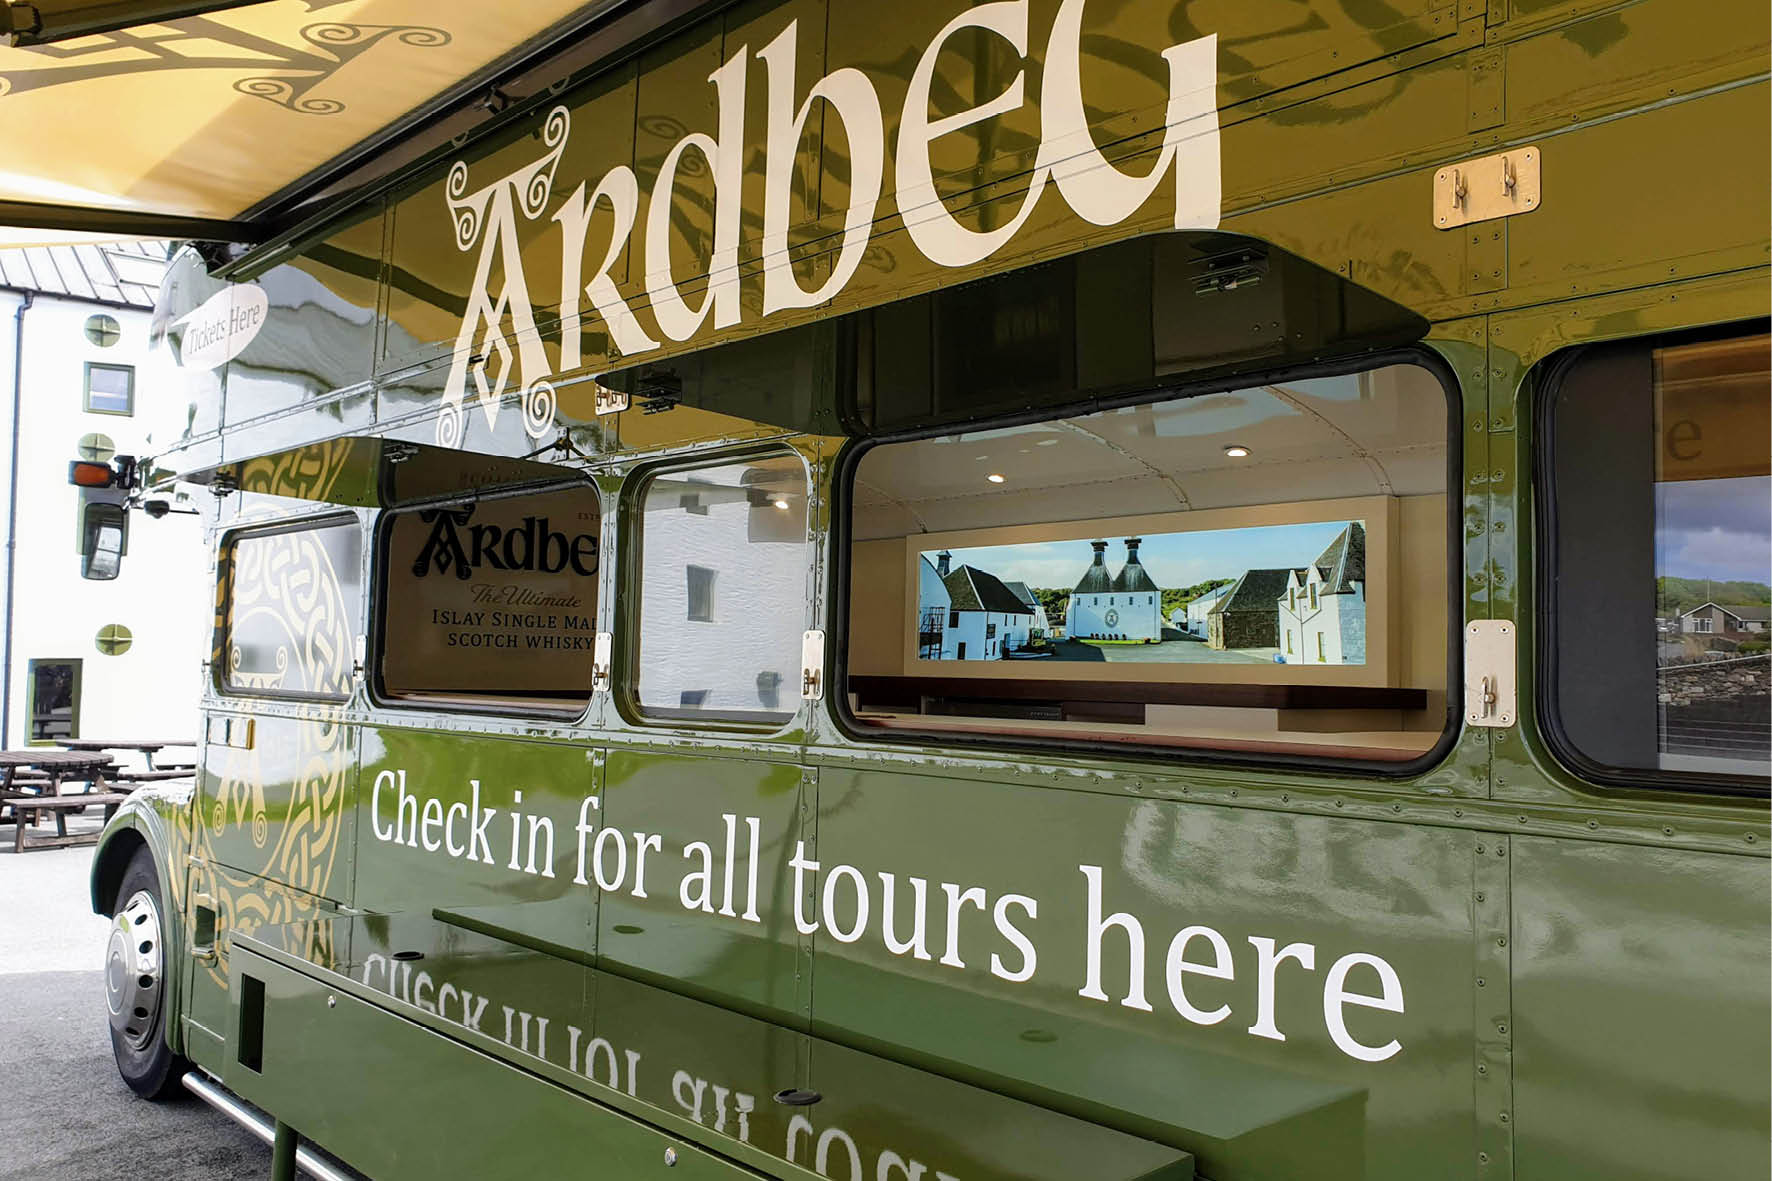 bus_business_2019_ardbeg_4.jpg